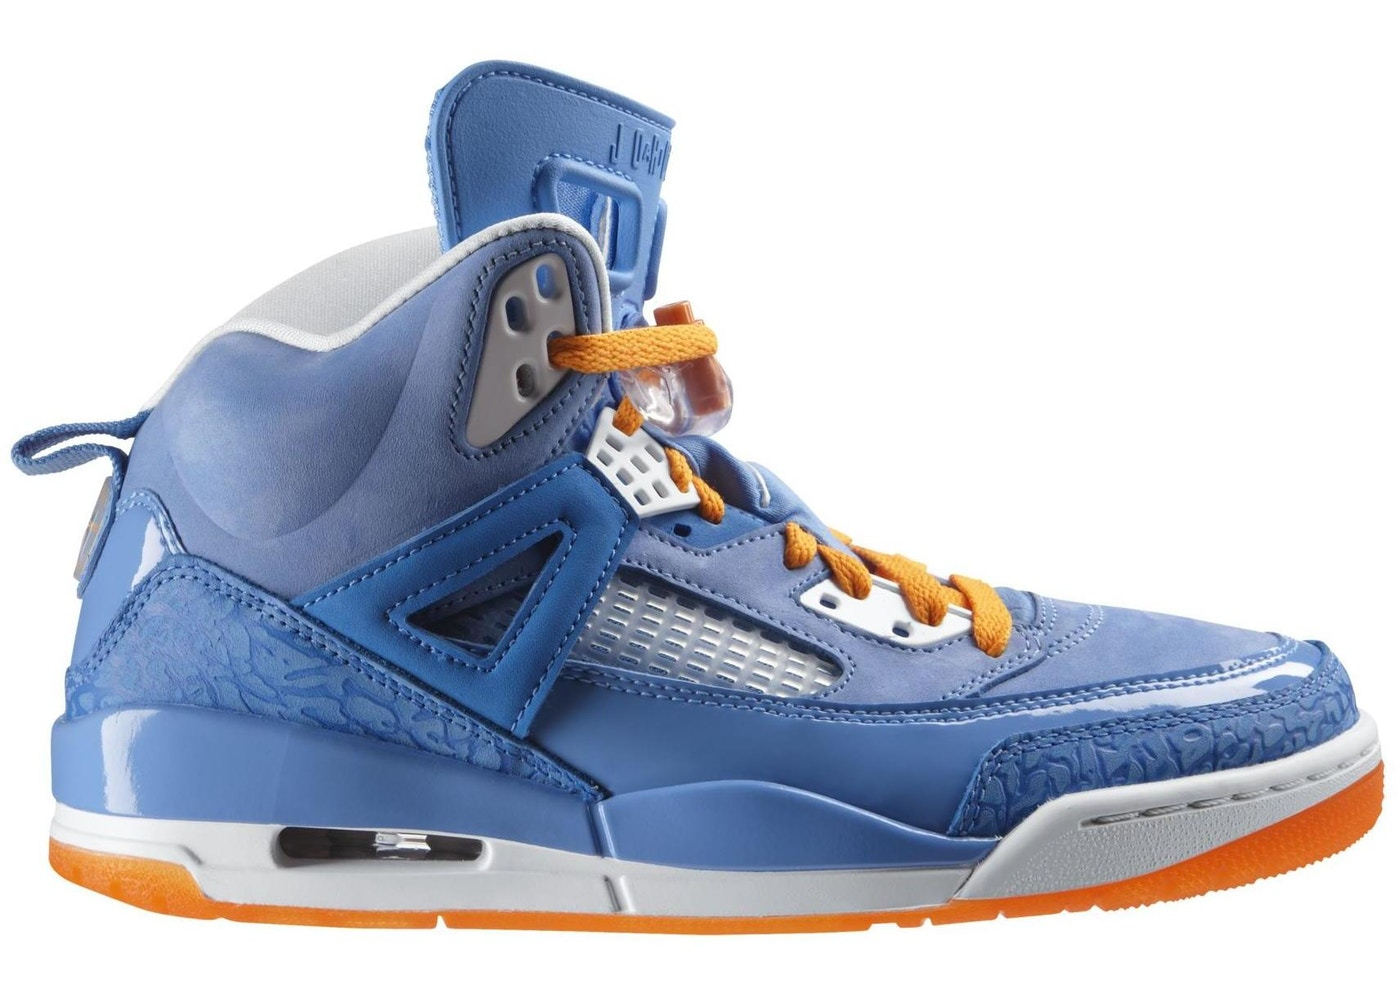 298d72aeed5d Air Jordan Spizike Size 17 Shoes - Average Sale Price